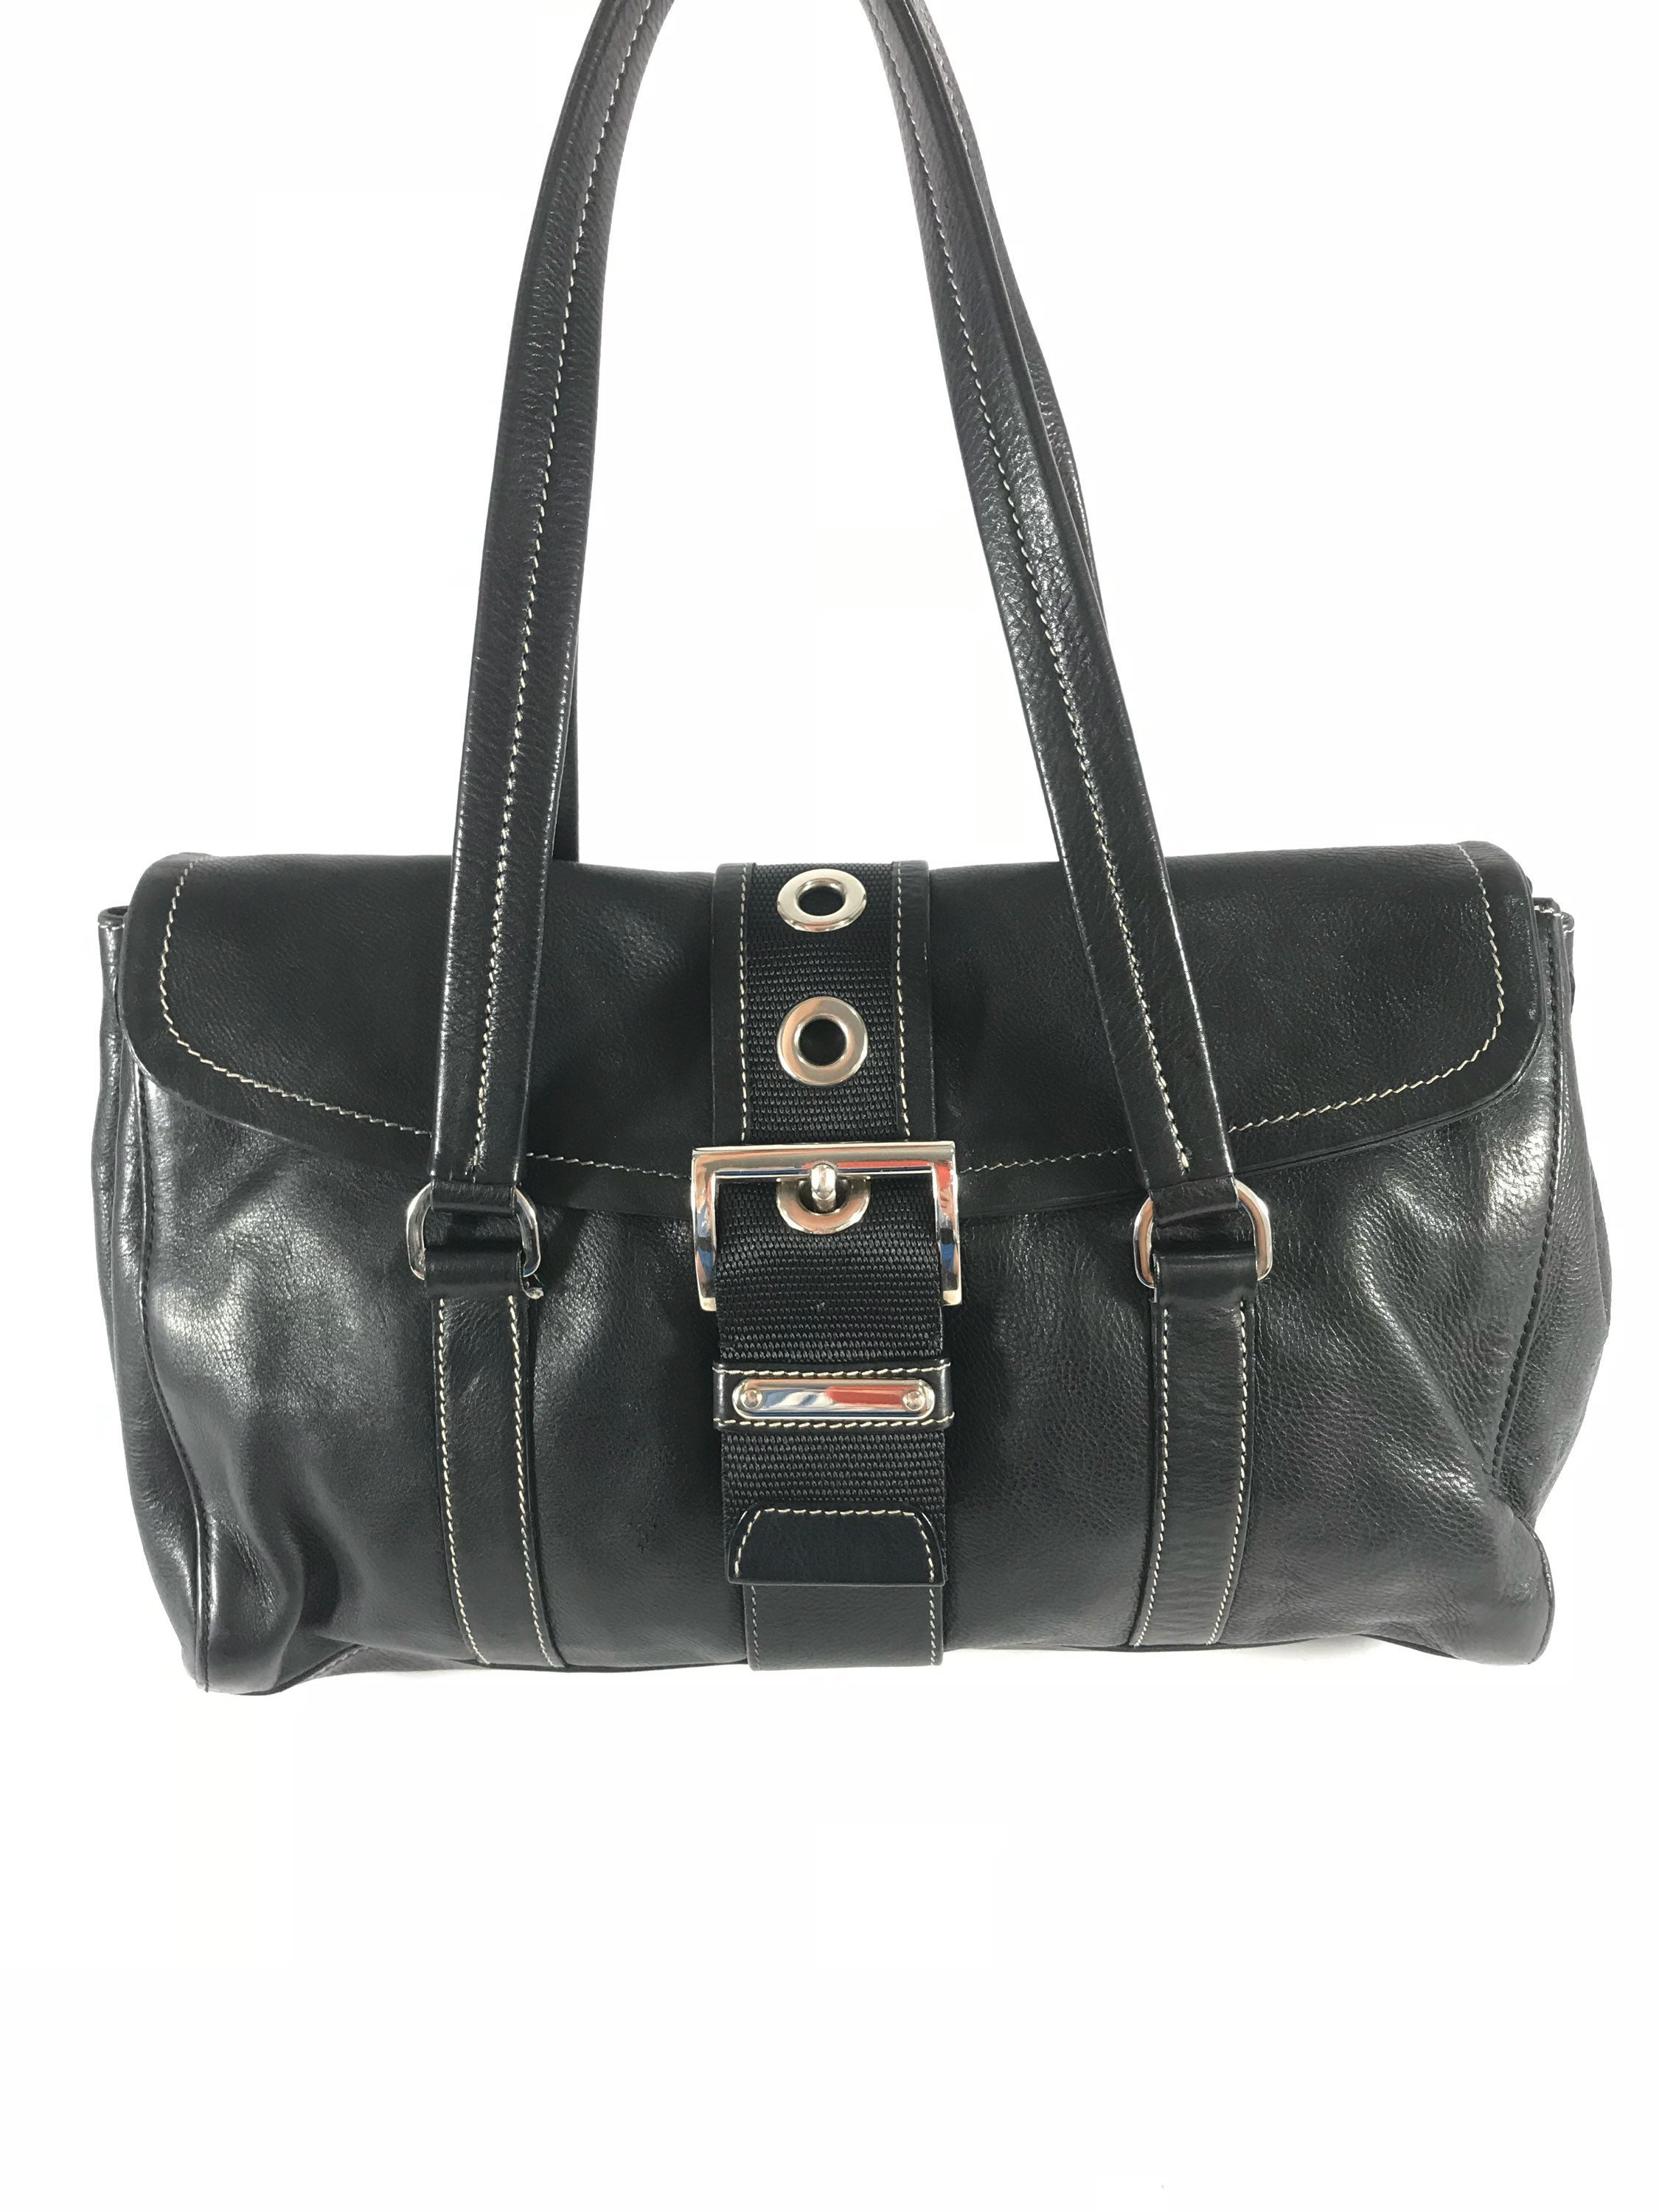 5d777db46529 PRADA Vintage Fashionable Authentic Black Leather Satchel Made in Italy